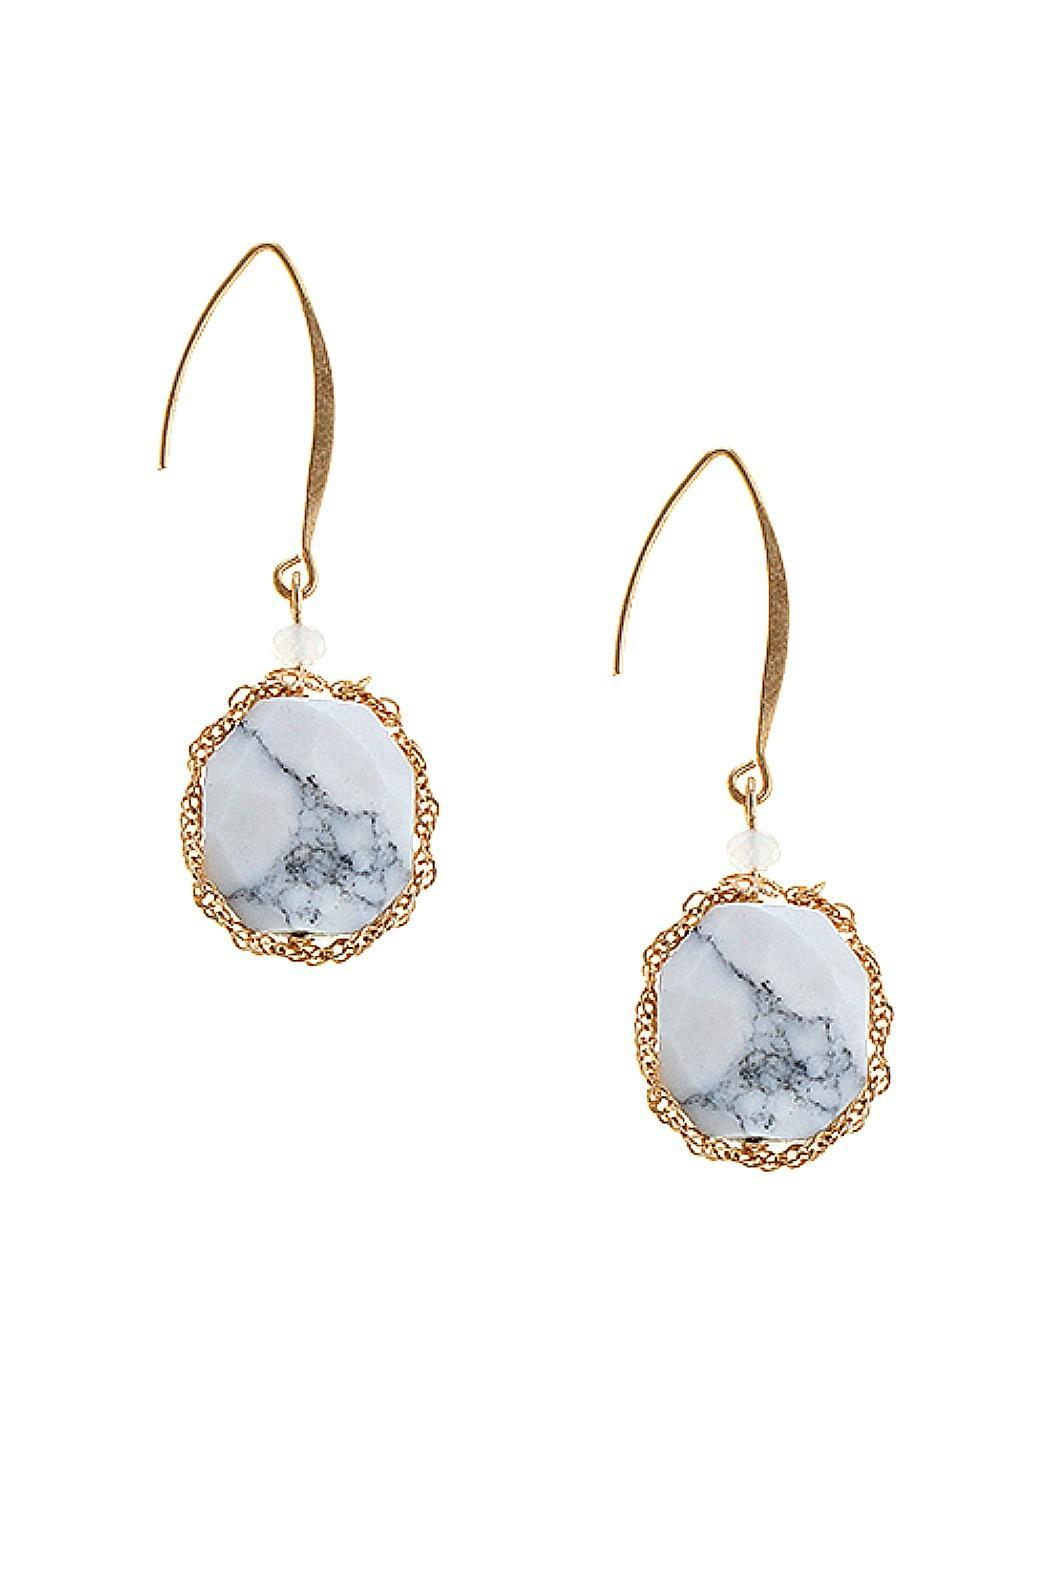 Fashion Bella Chain Precious Stone Earrings - Main Image